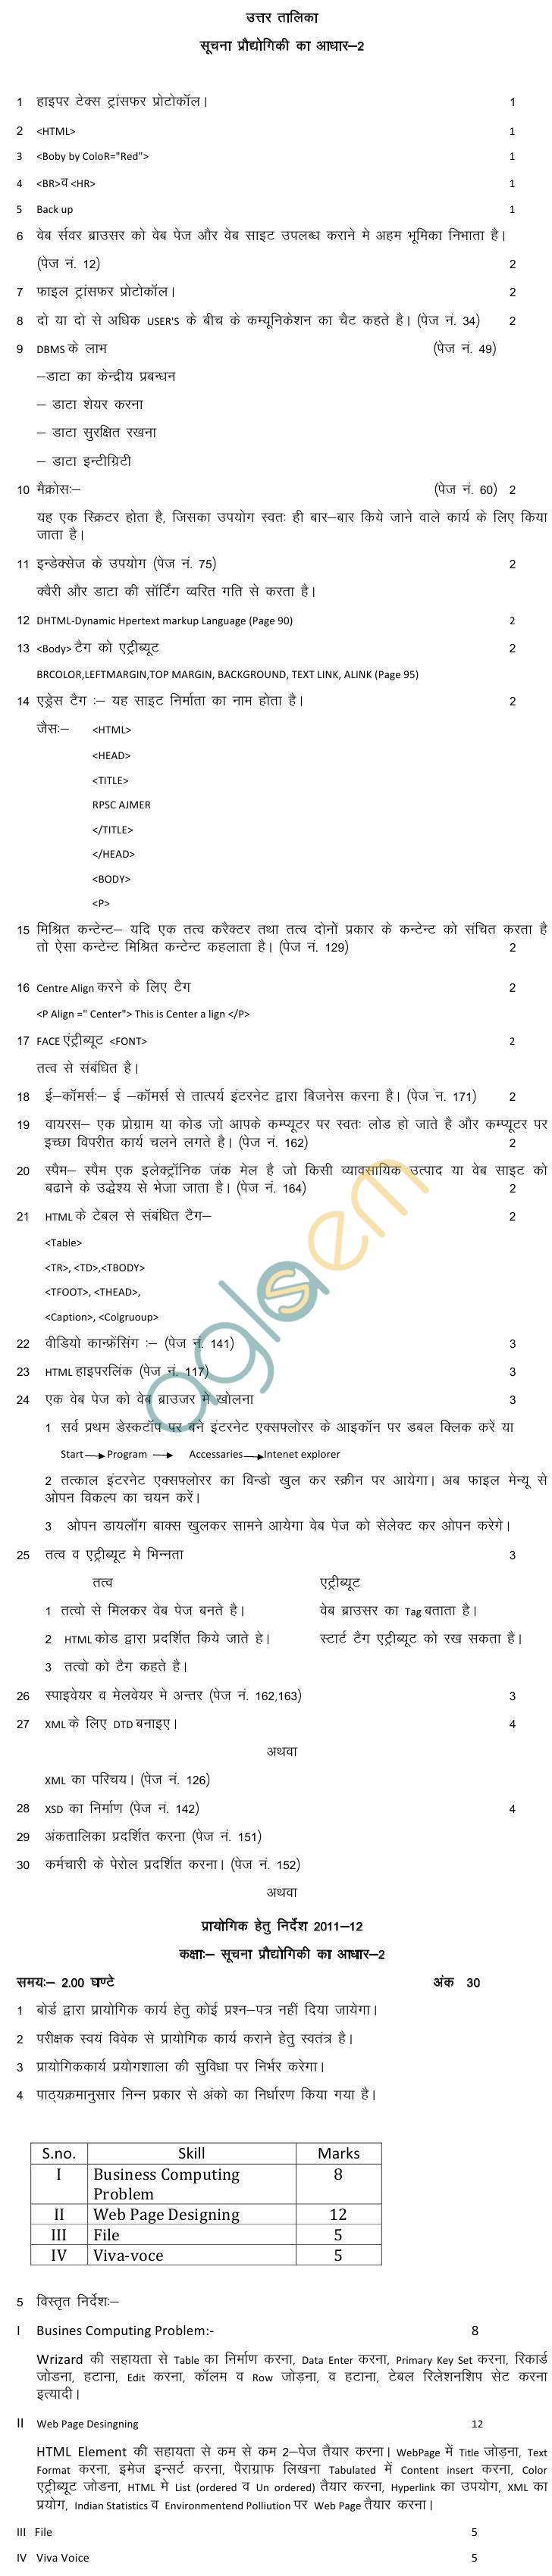 Rajasthan Board Class 10Foundation of Information PracticesModel Question Paper